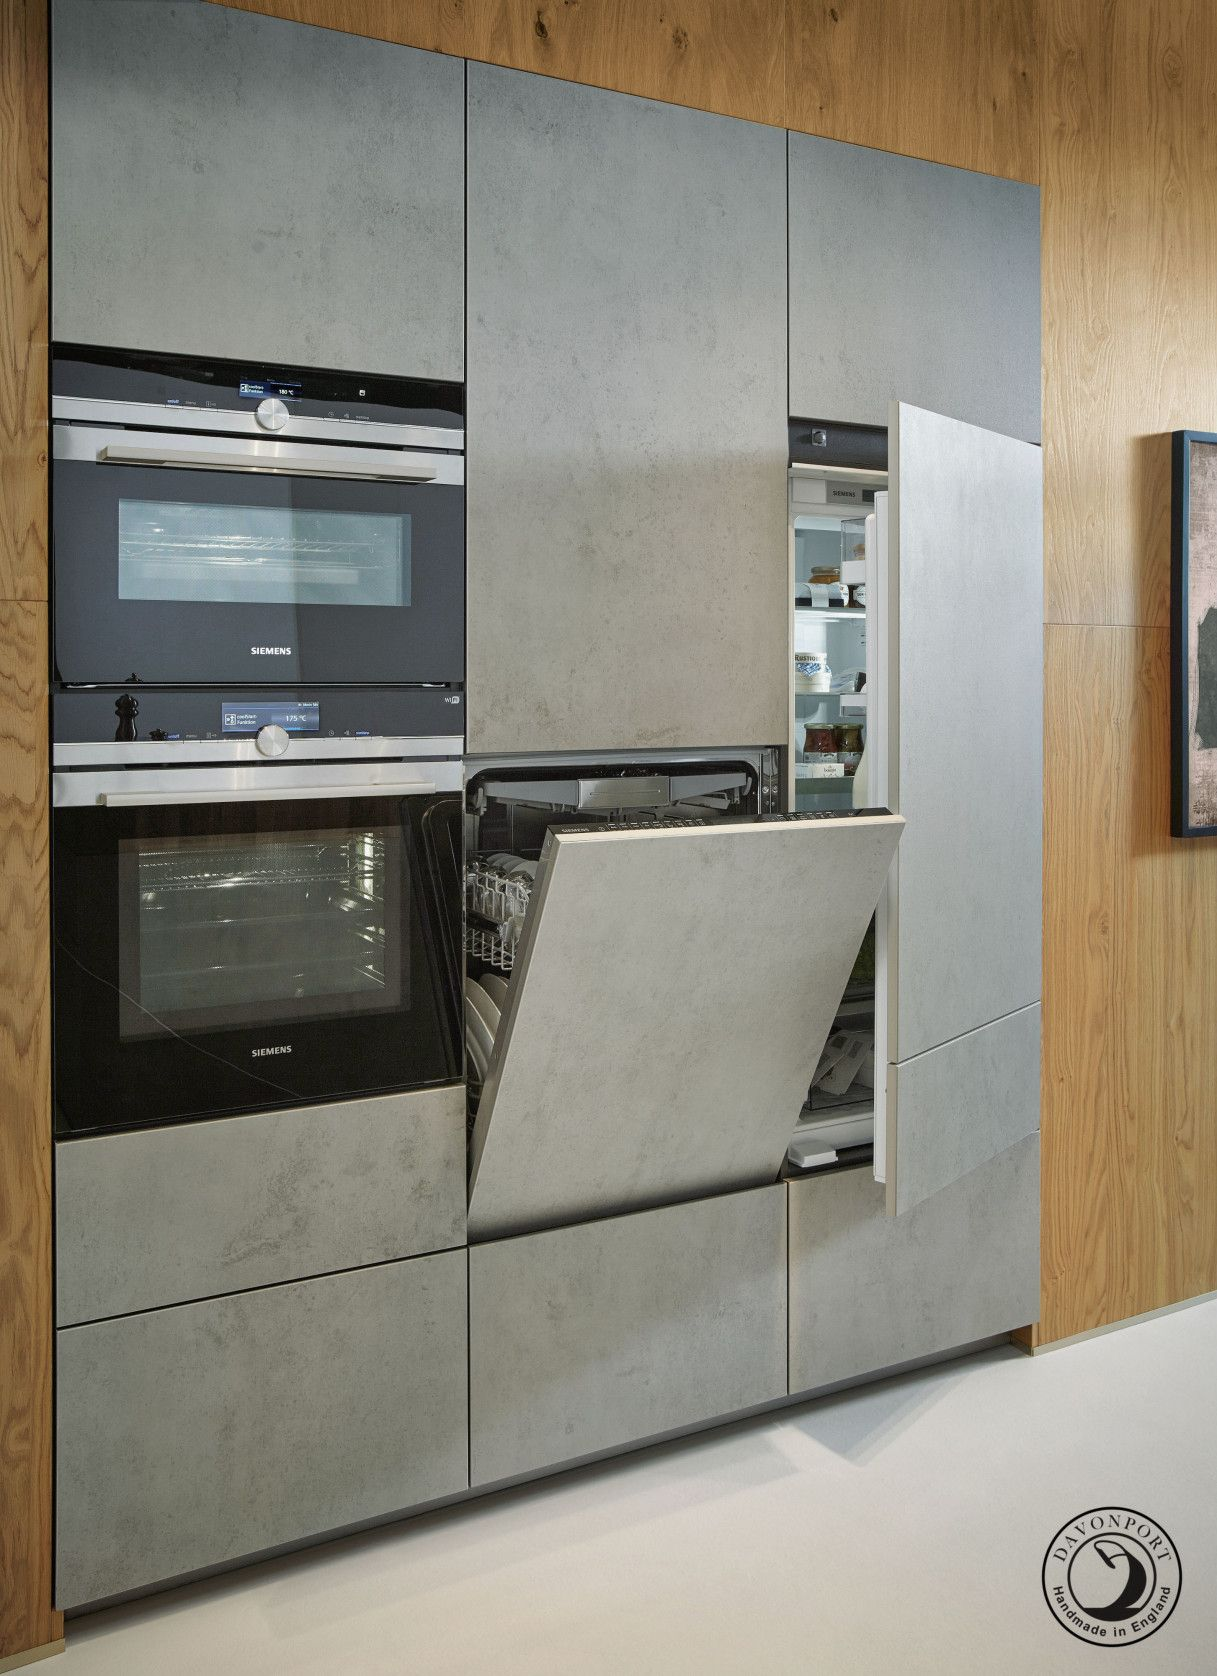 70 Steam Clean Kitchen Cabinets Apartment Cabinet Ideas Check More At Http